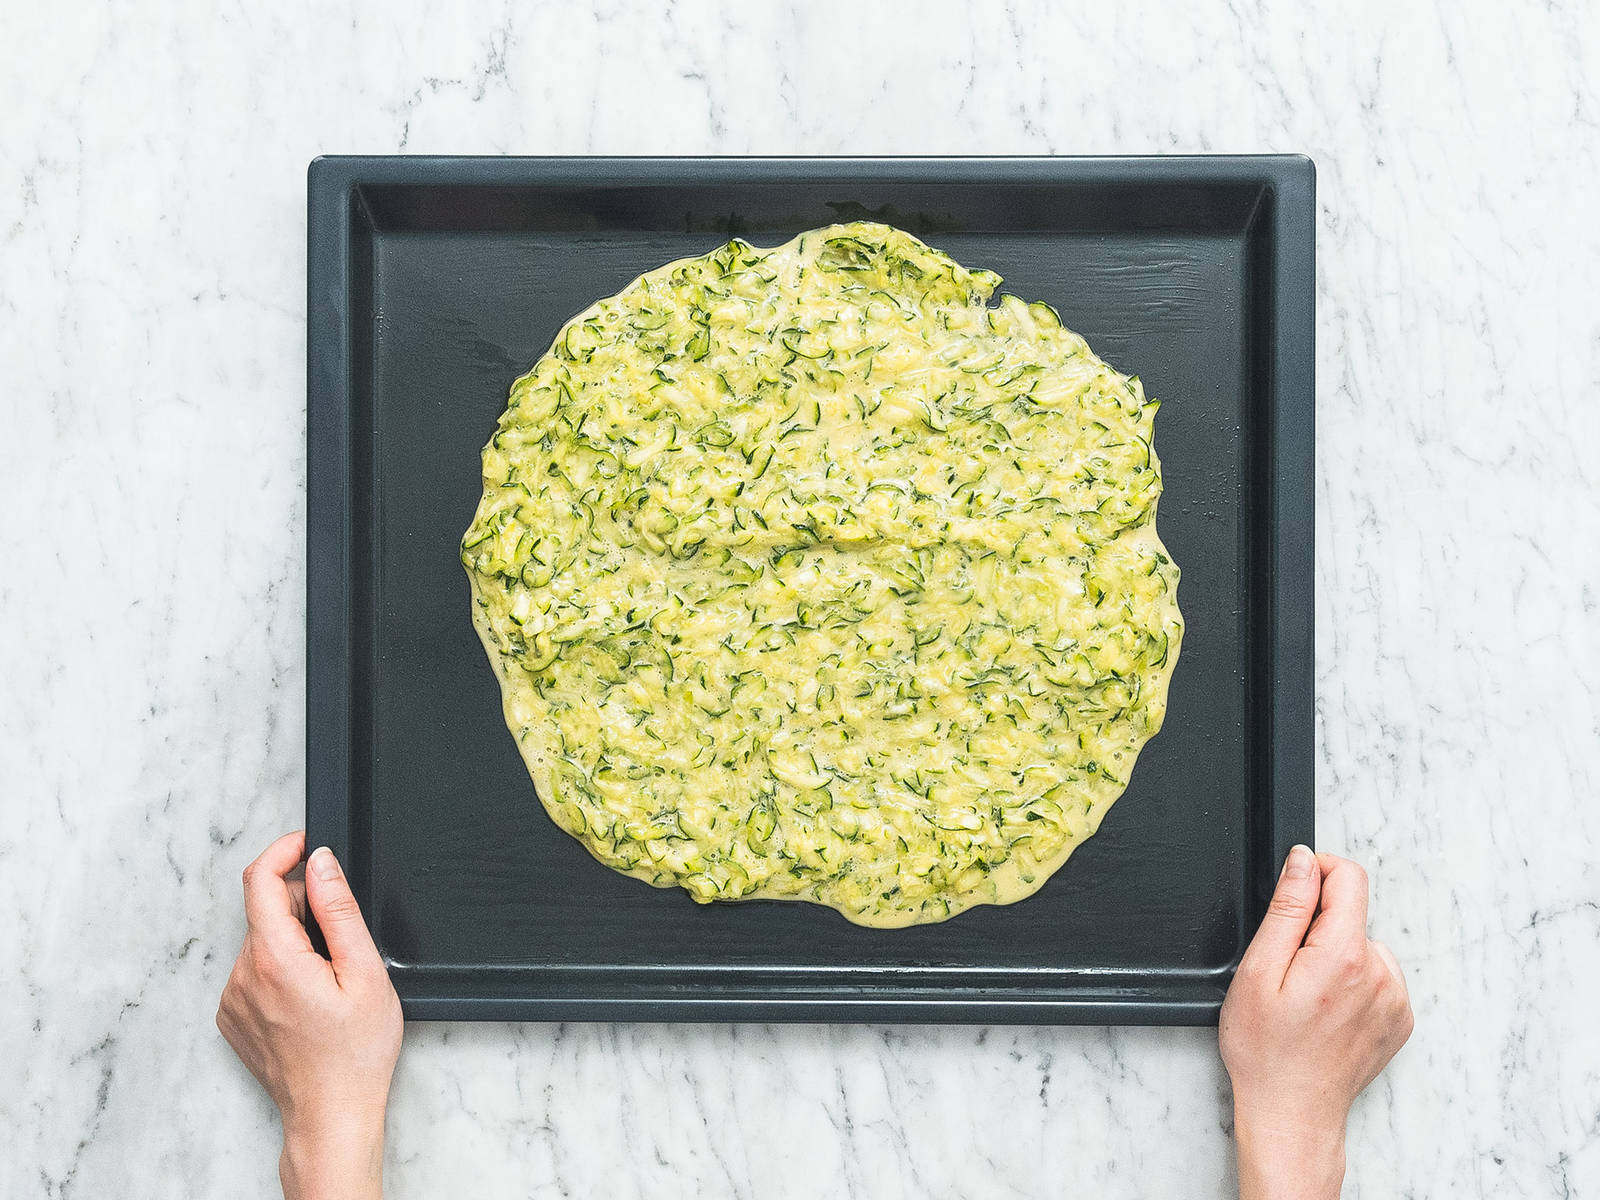 Grease a baking sheet with olive oil and spread the zucchini mixture over it. Transfer to oven for approx. 25 min. at 200°C/400°F until golden brown and crisp.